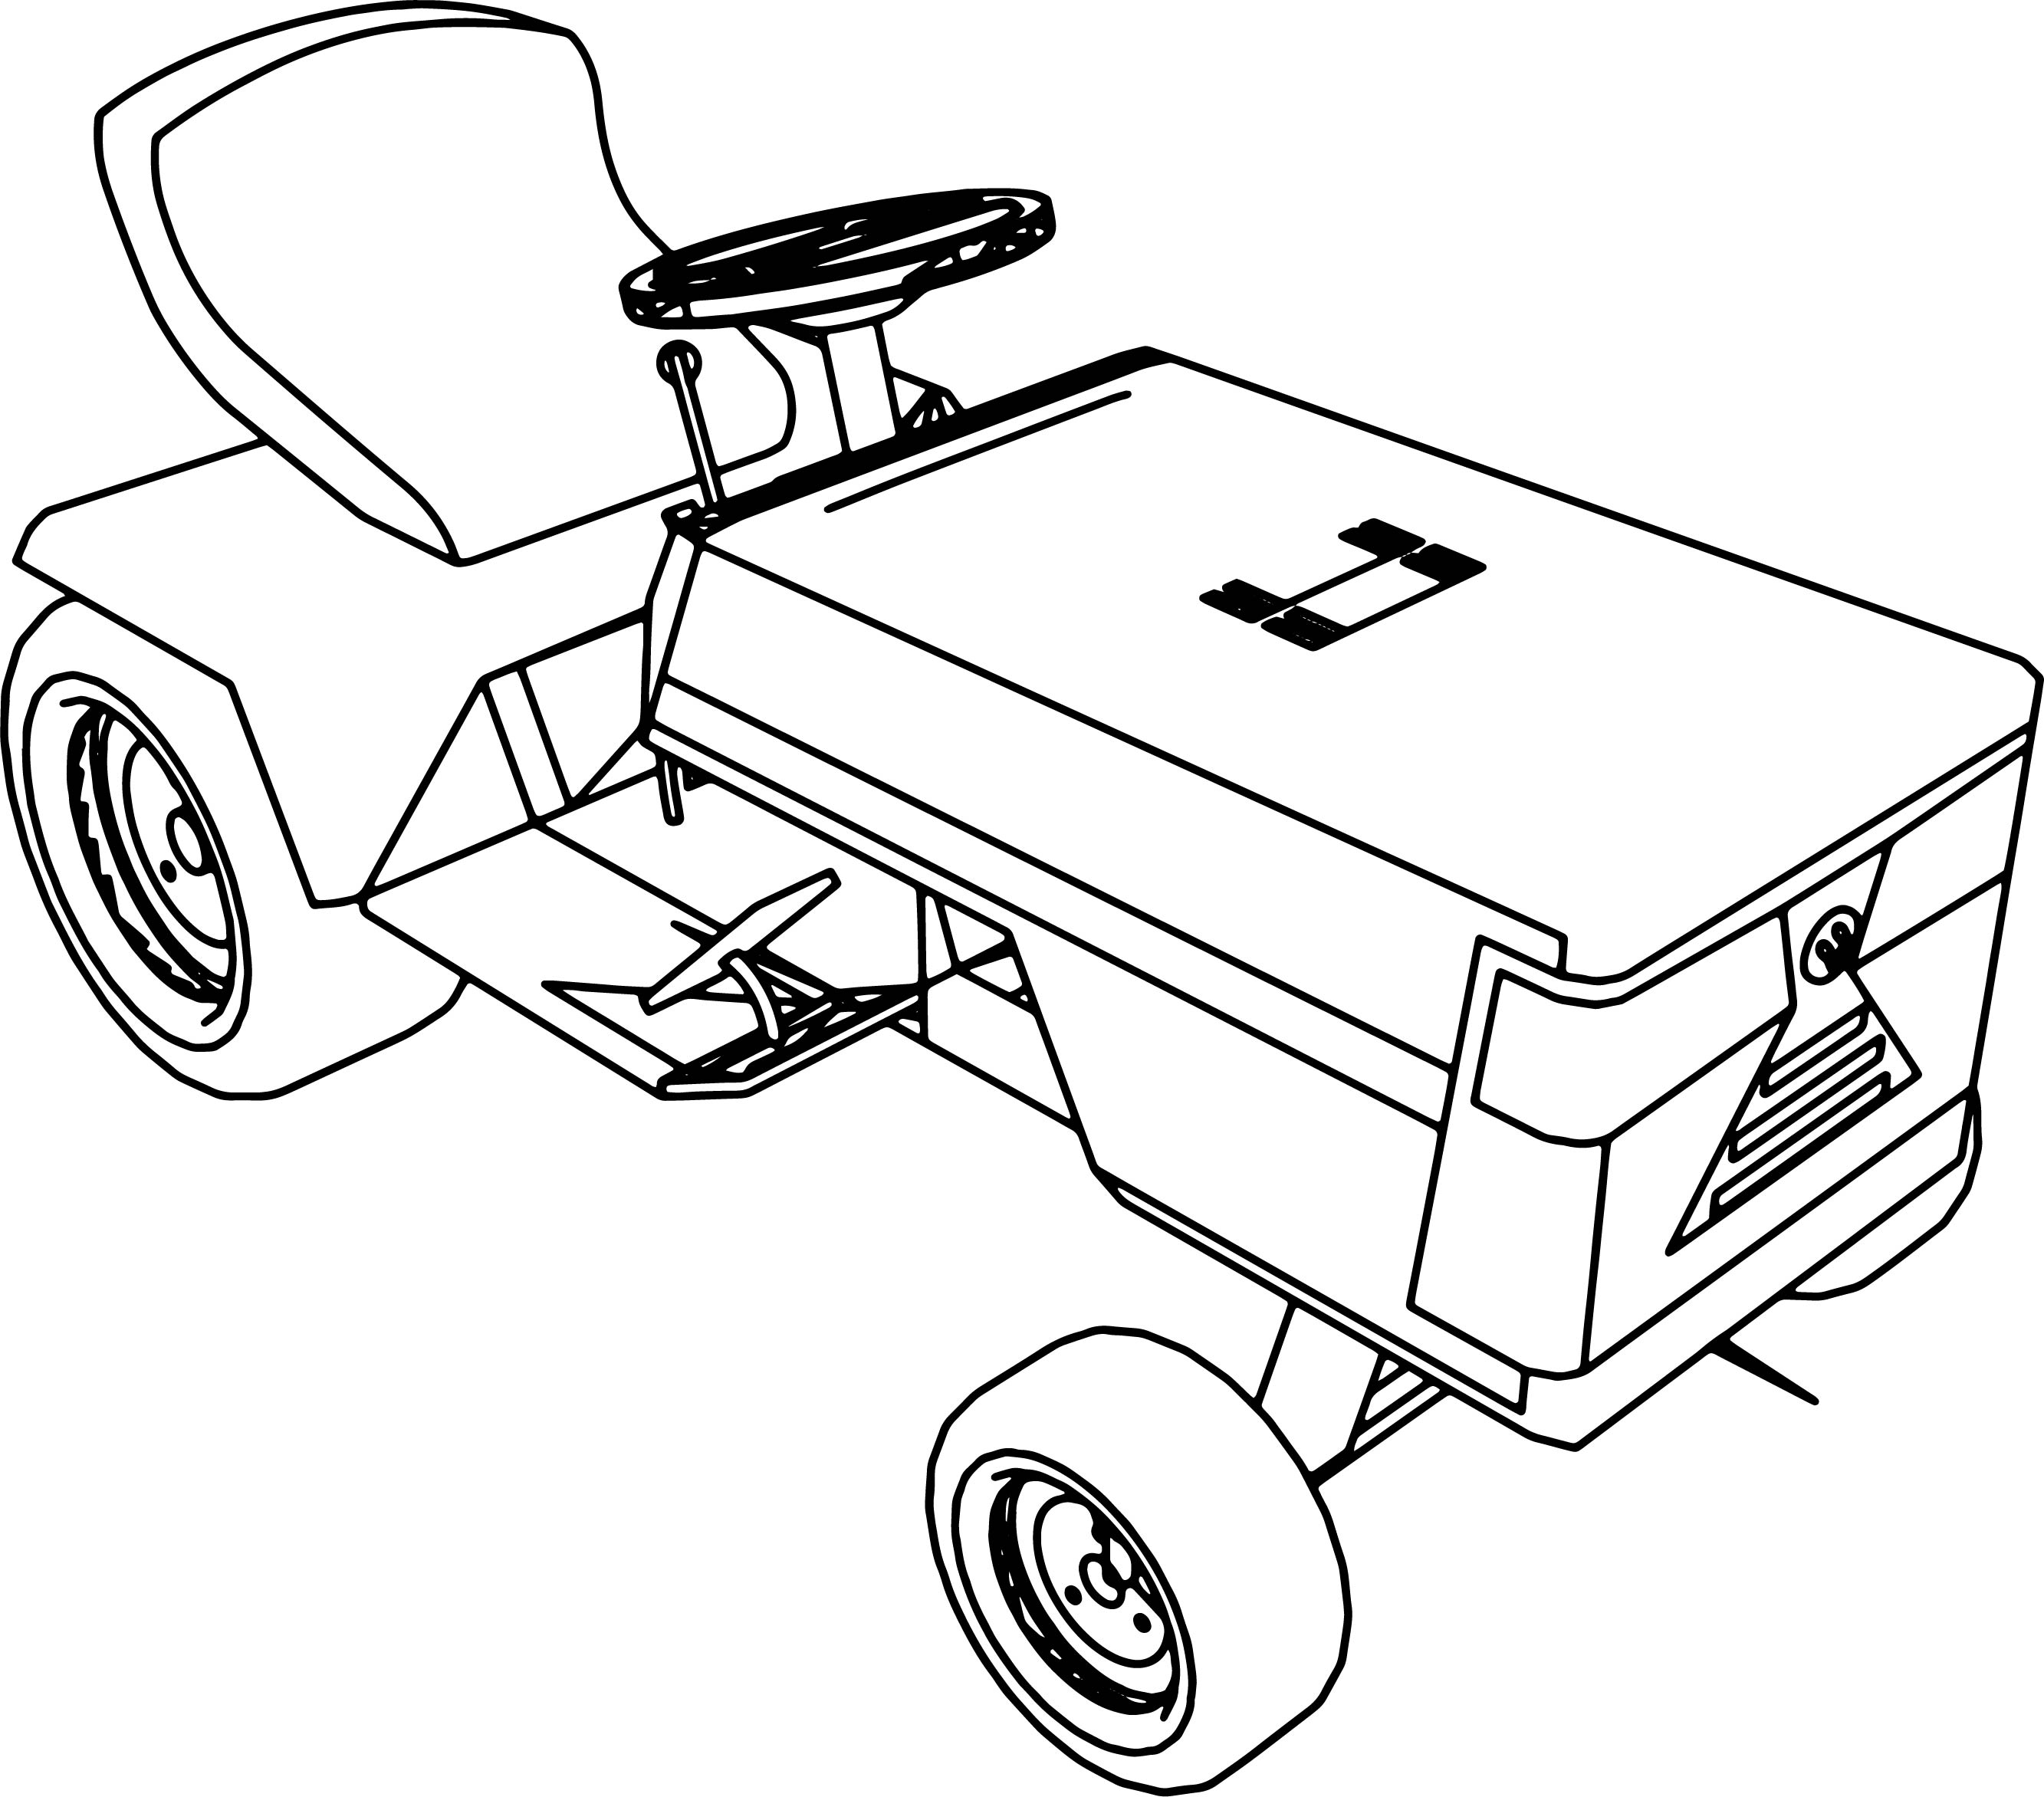 Up Graded Briggs And Stratton Craftsman Lawnmower Coloring